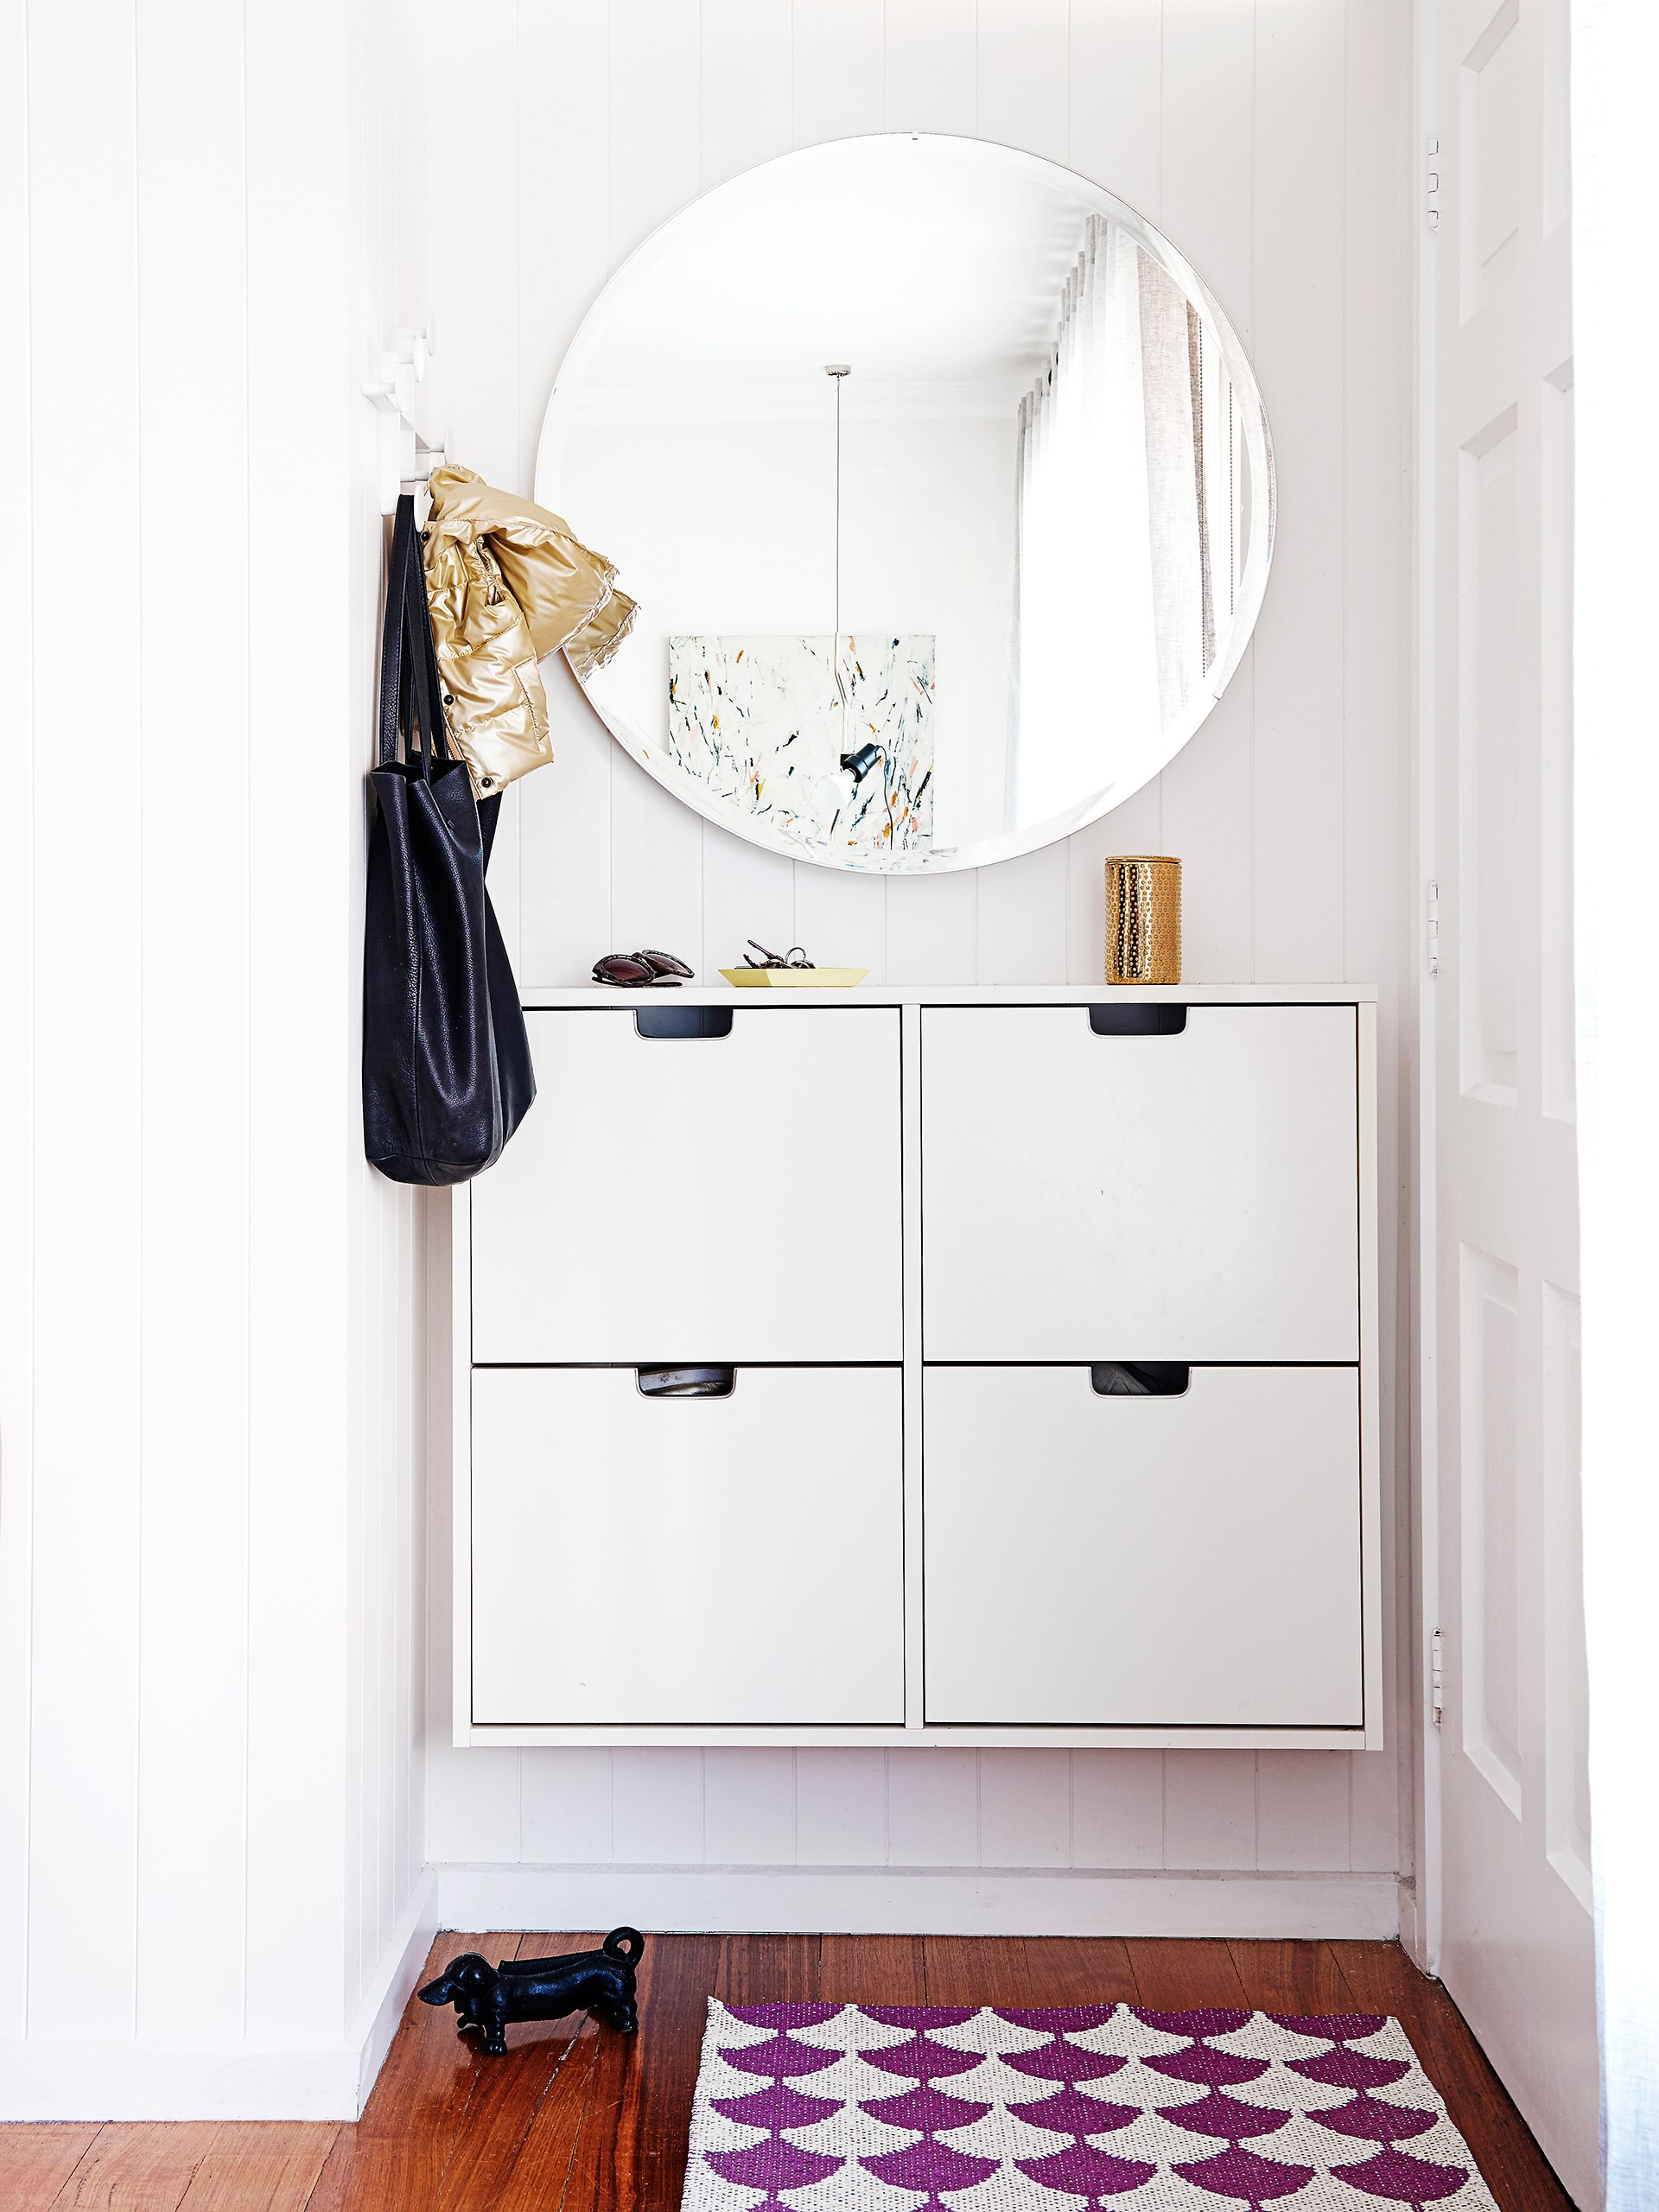 """A wall-mounted shoe cabinet doubles as an entry table in this [compact yet creative apartment](http://www.homestolove.com.au/interior-designer-lauren-lis-creative-home-renovation-2843